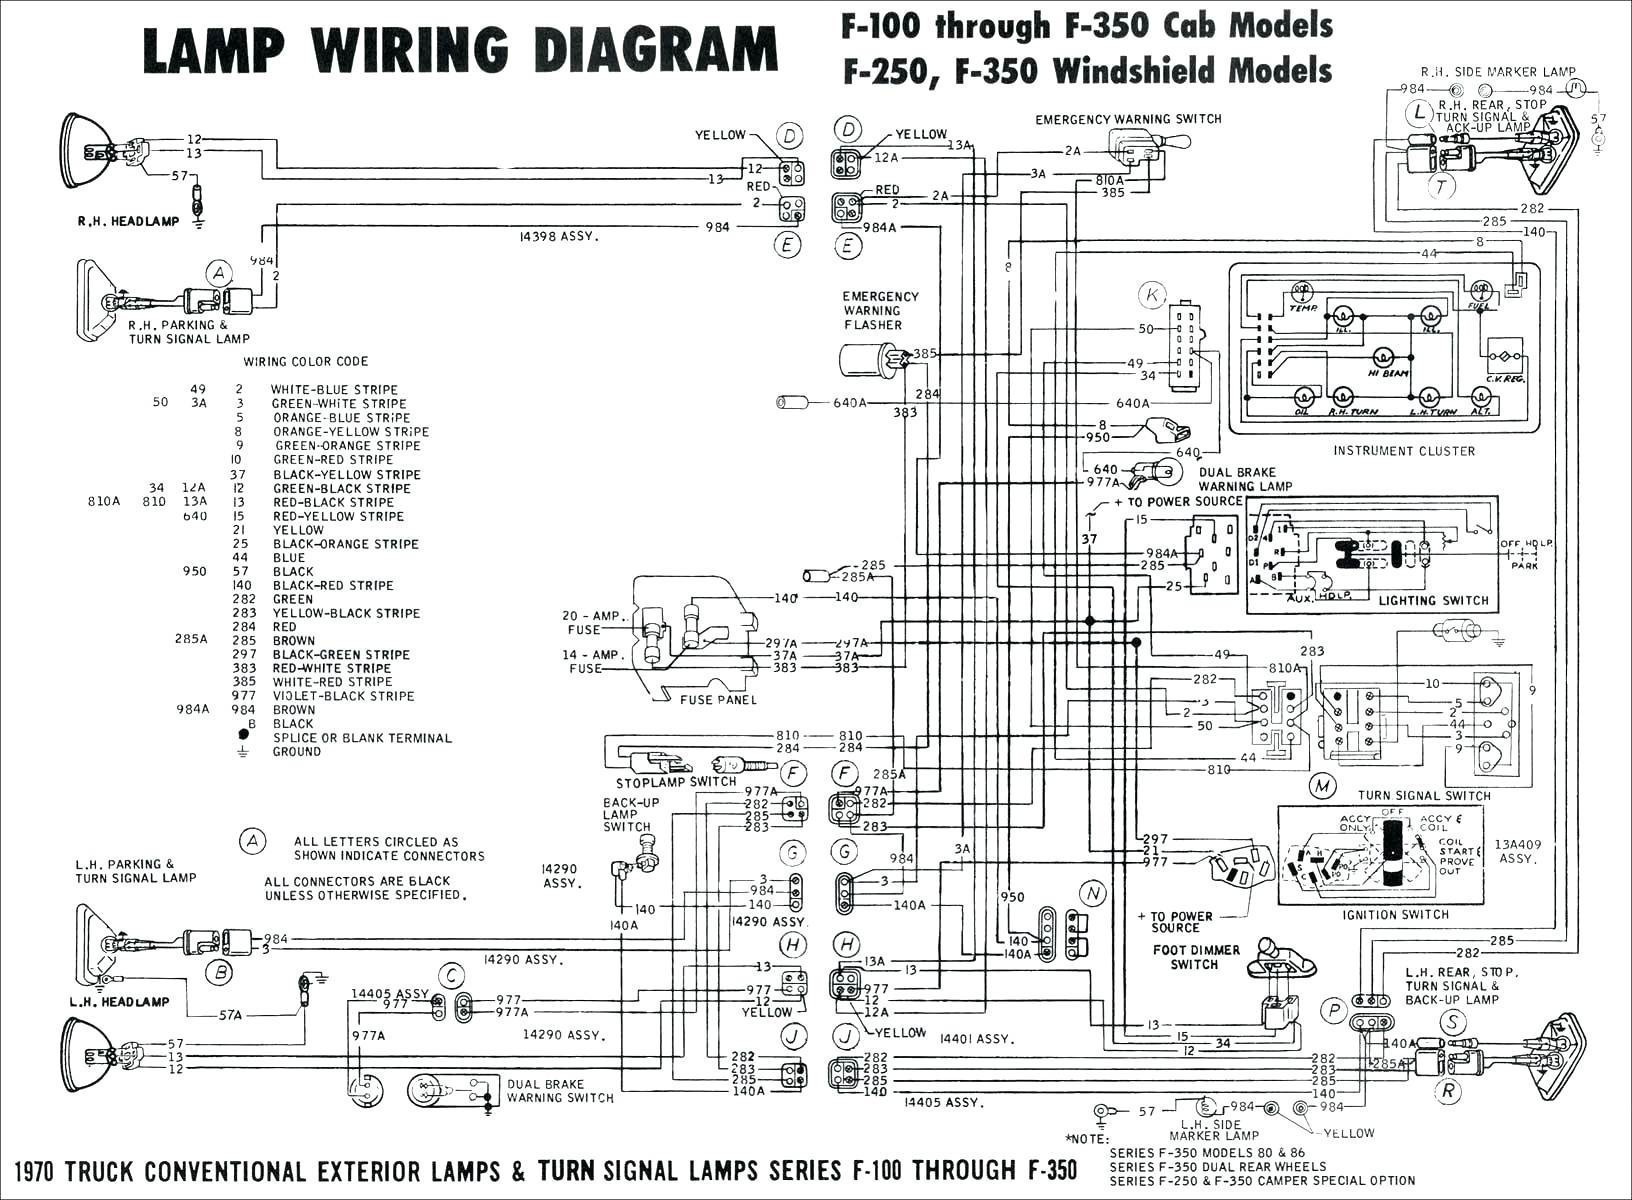 2002 Jeep Grand Cherokee Engine Diagram 2 Basic Ignition System Wiring Diagram New 2002 Jeep Grand Cherokee Of 2002 Jeep Grand Cherokee Engine Diagram 2